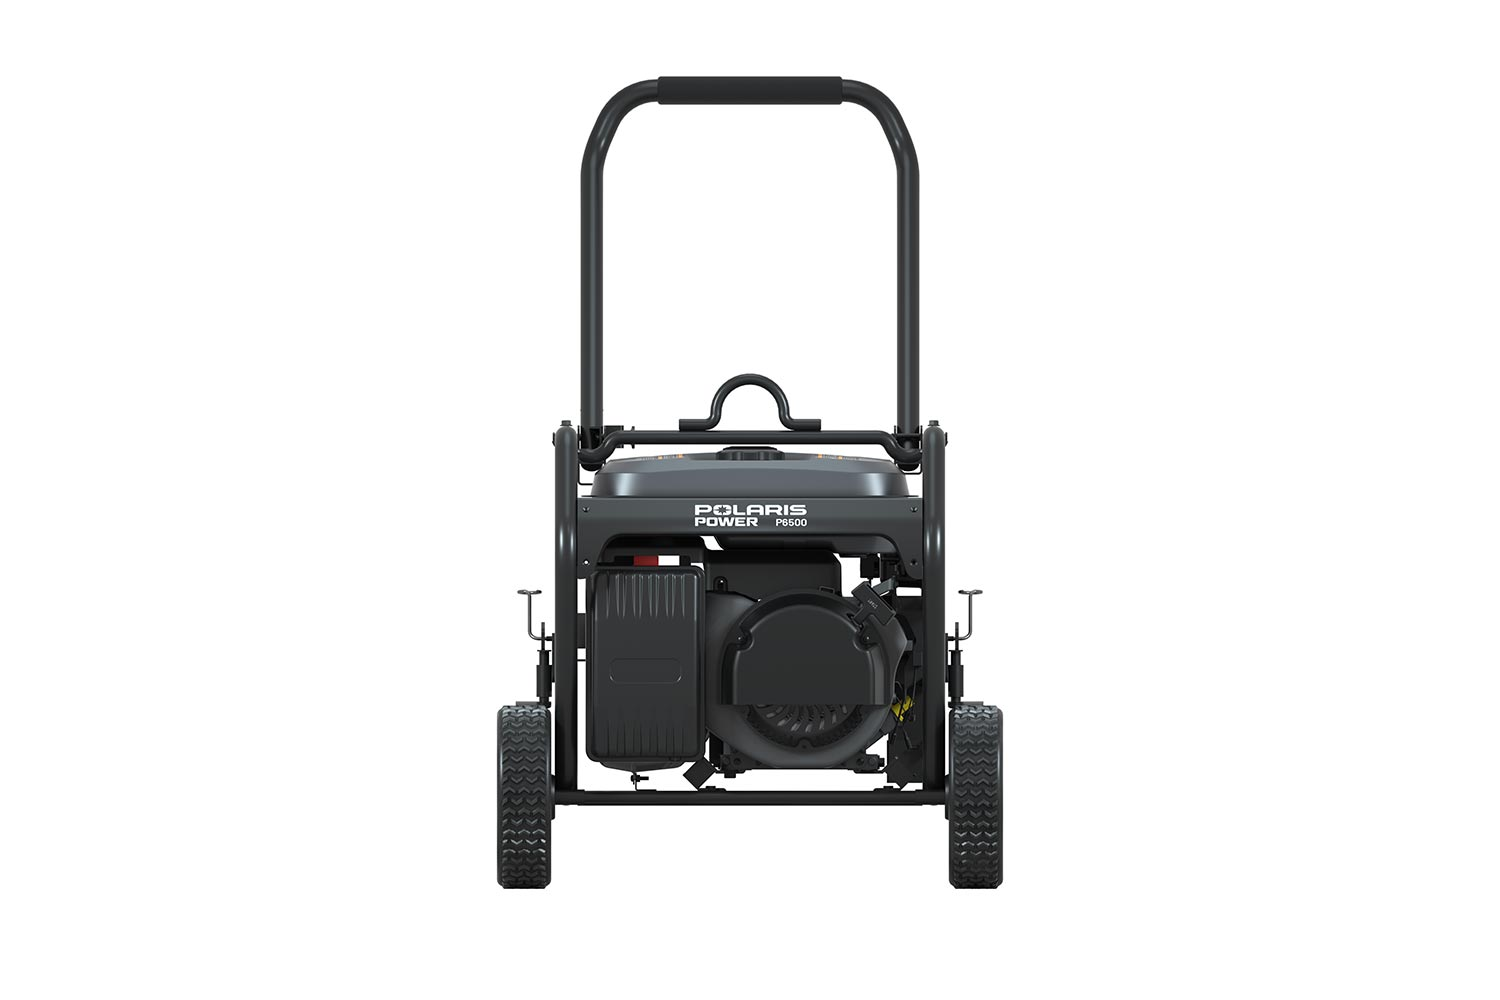 For reliable portable power, the Polaris P6500 offers a fantastic option for power on the go.